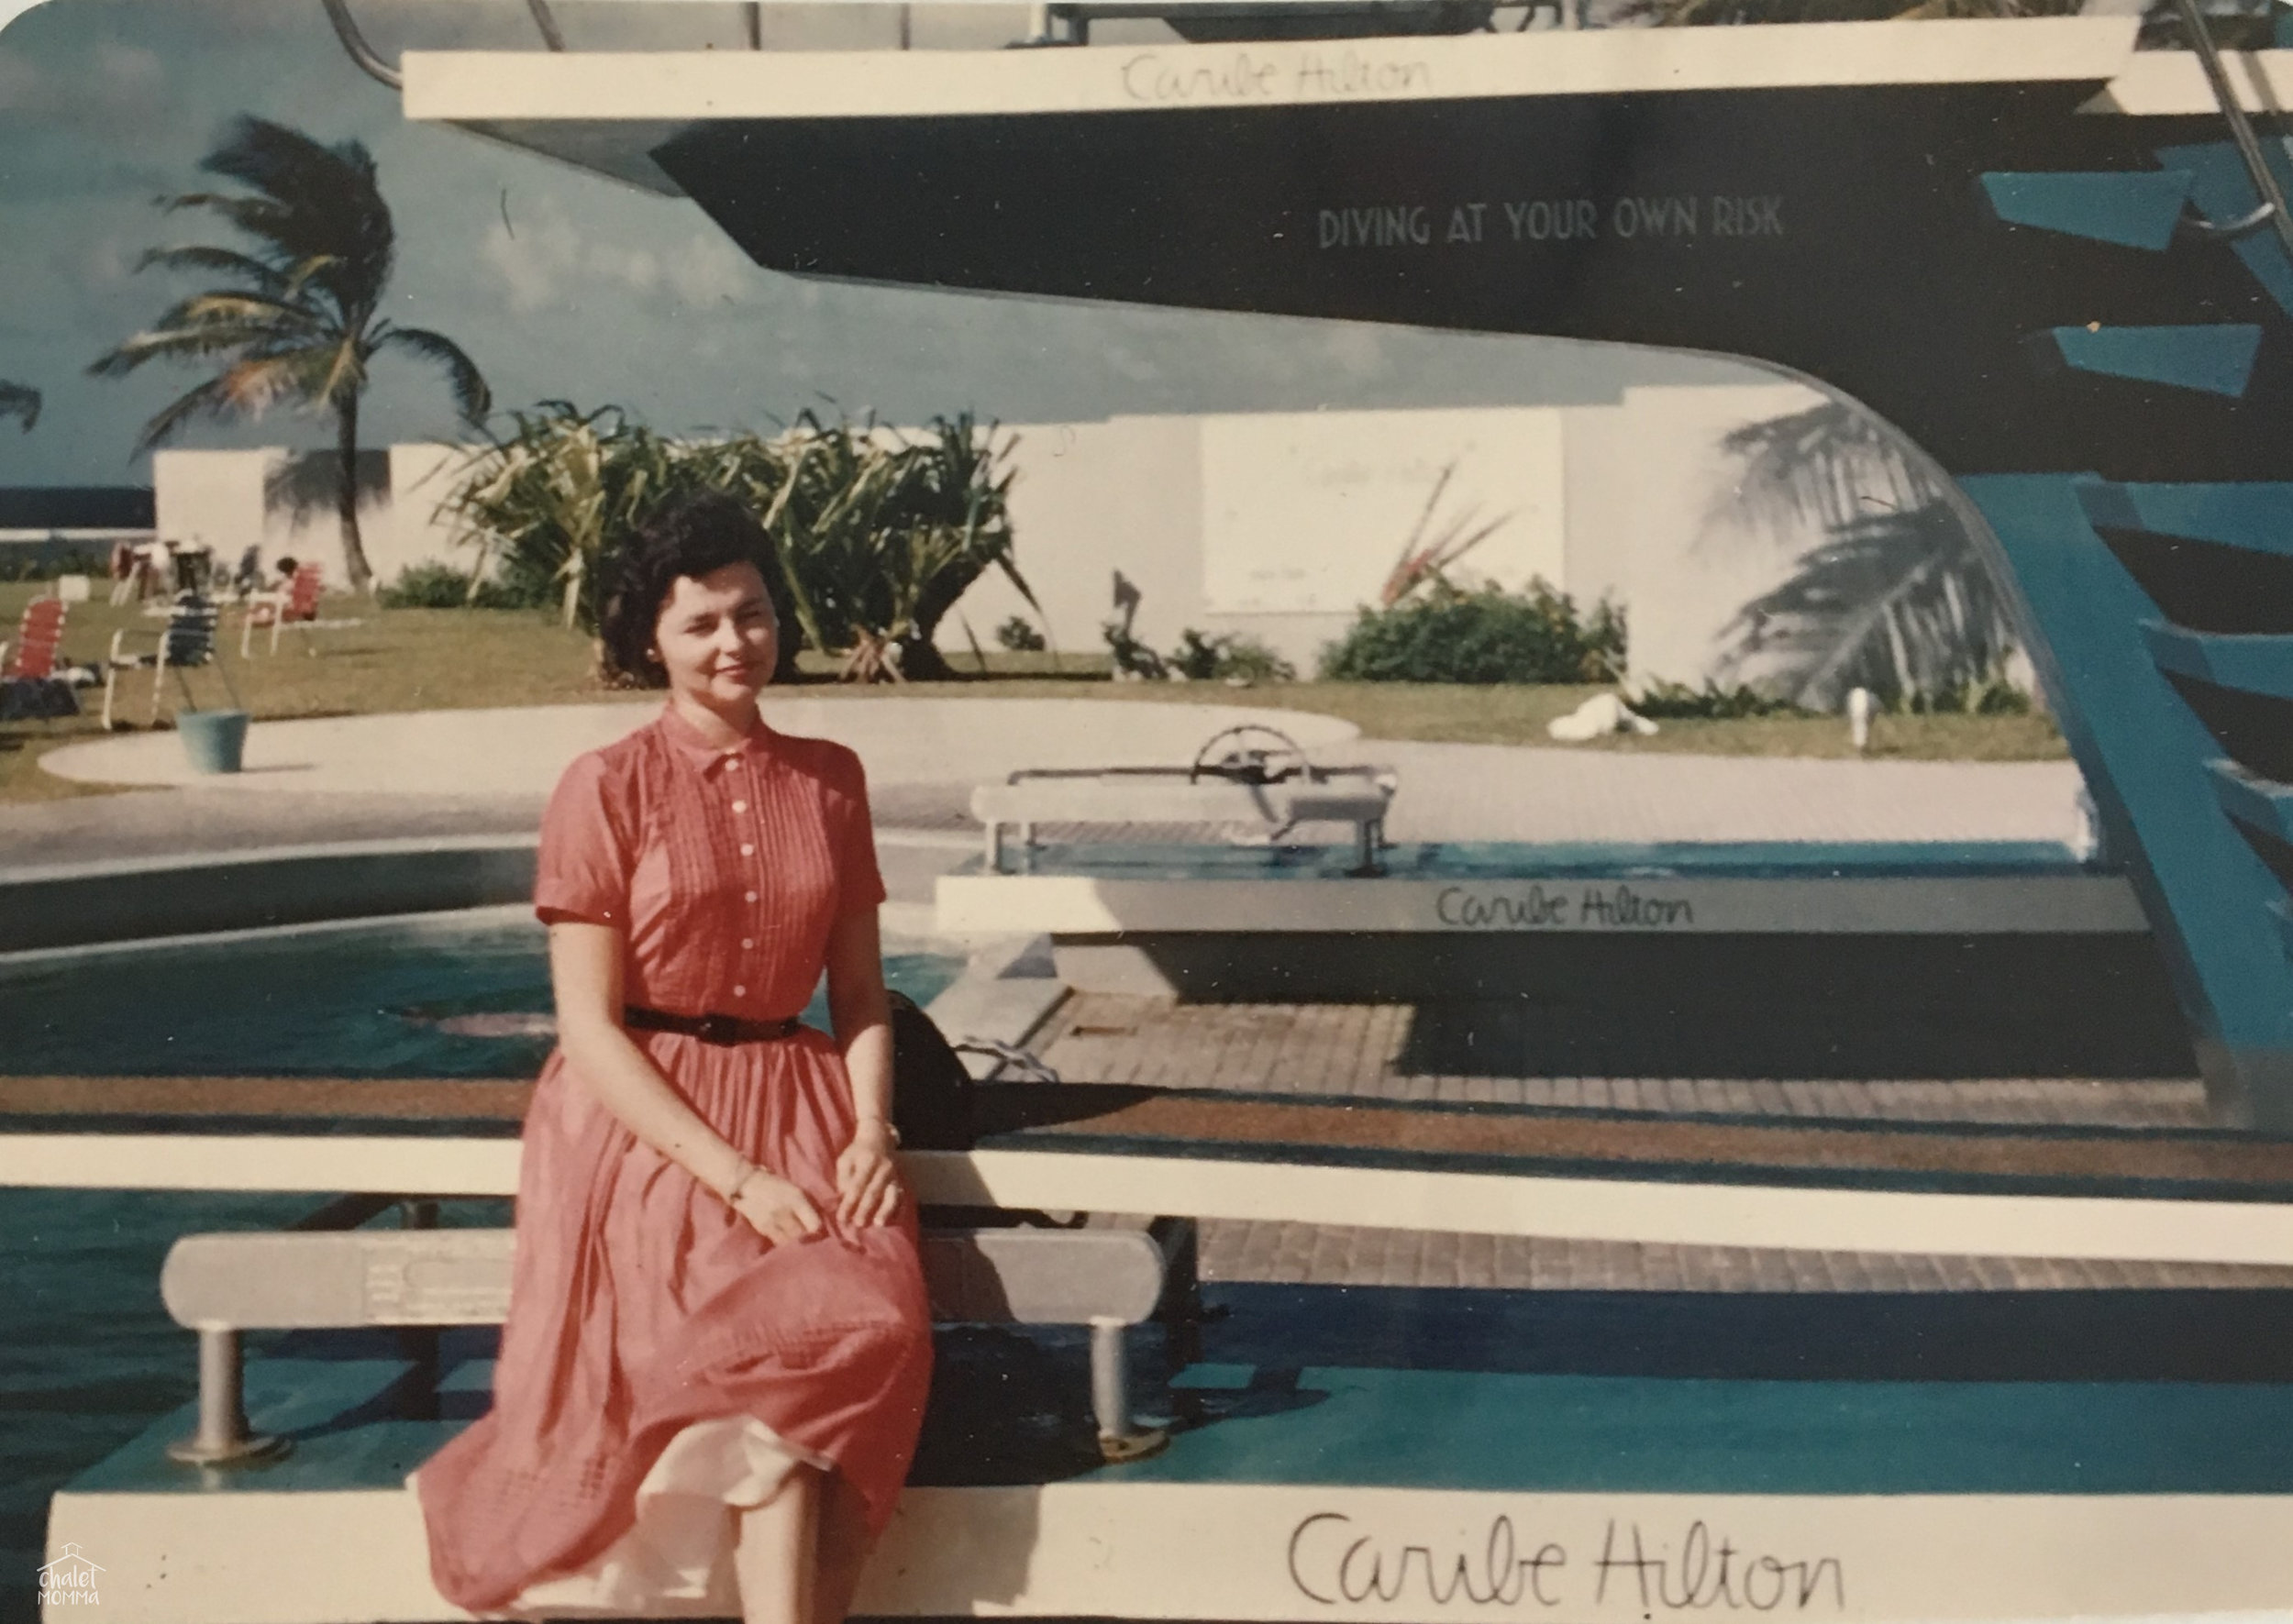 Staying at the Caribe Hilton in San Juan, Puerto Rico 1953.